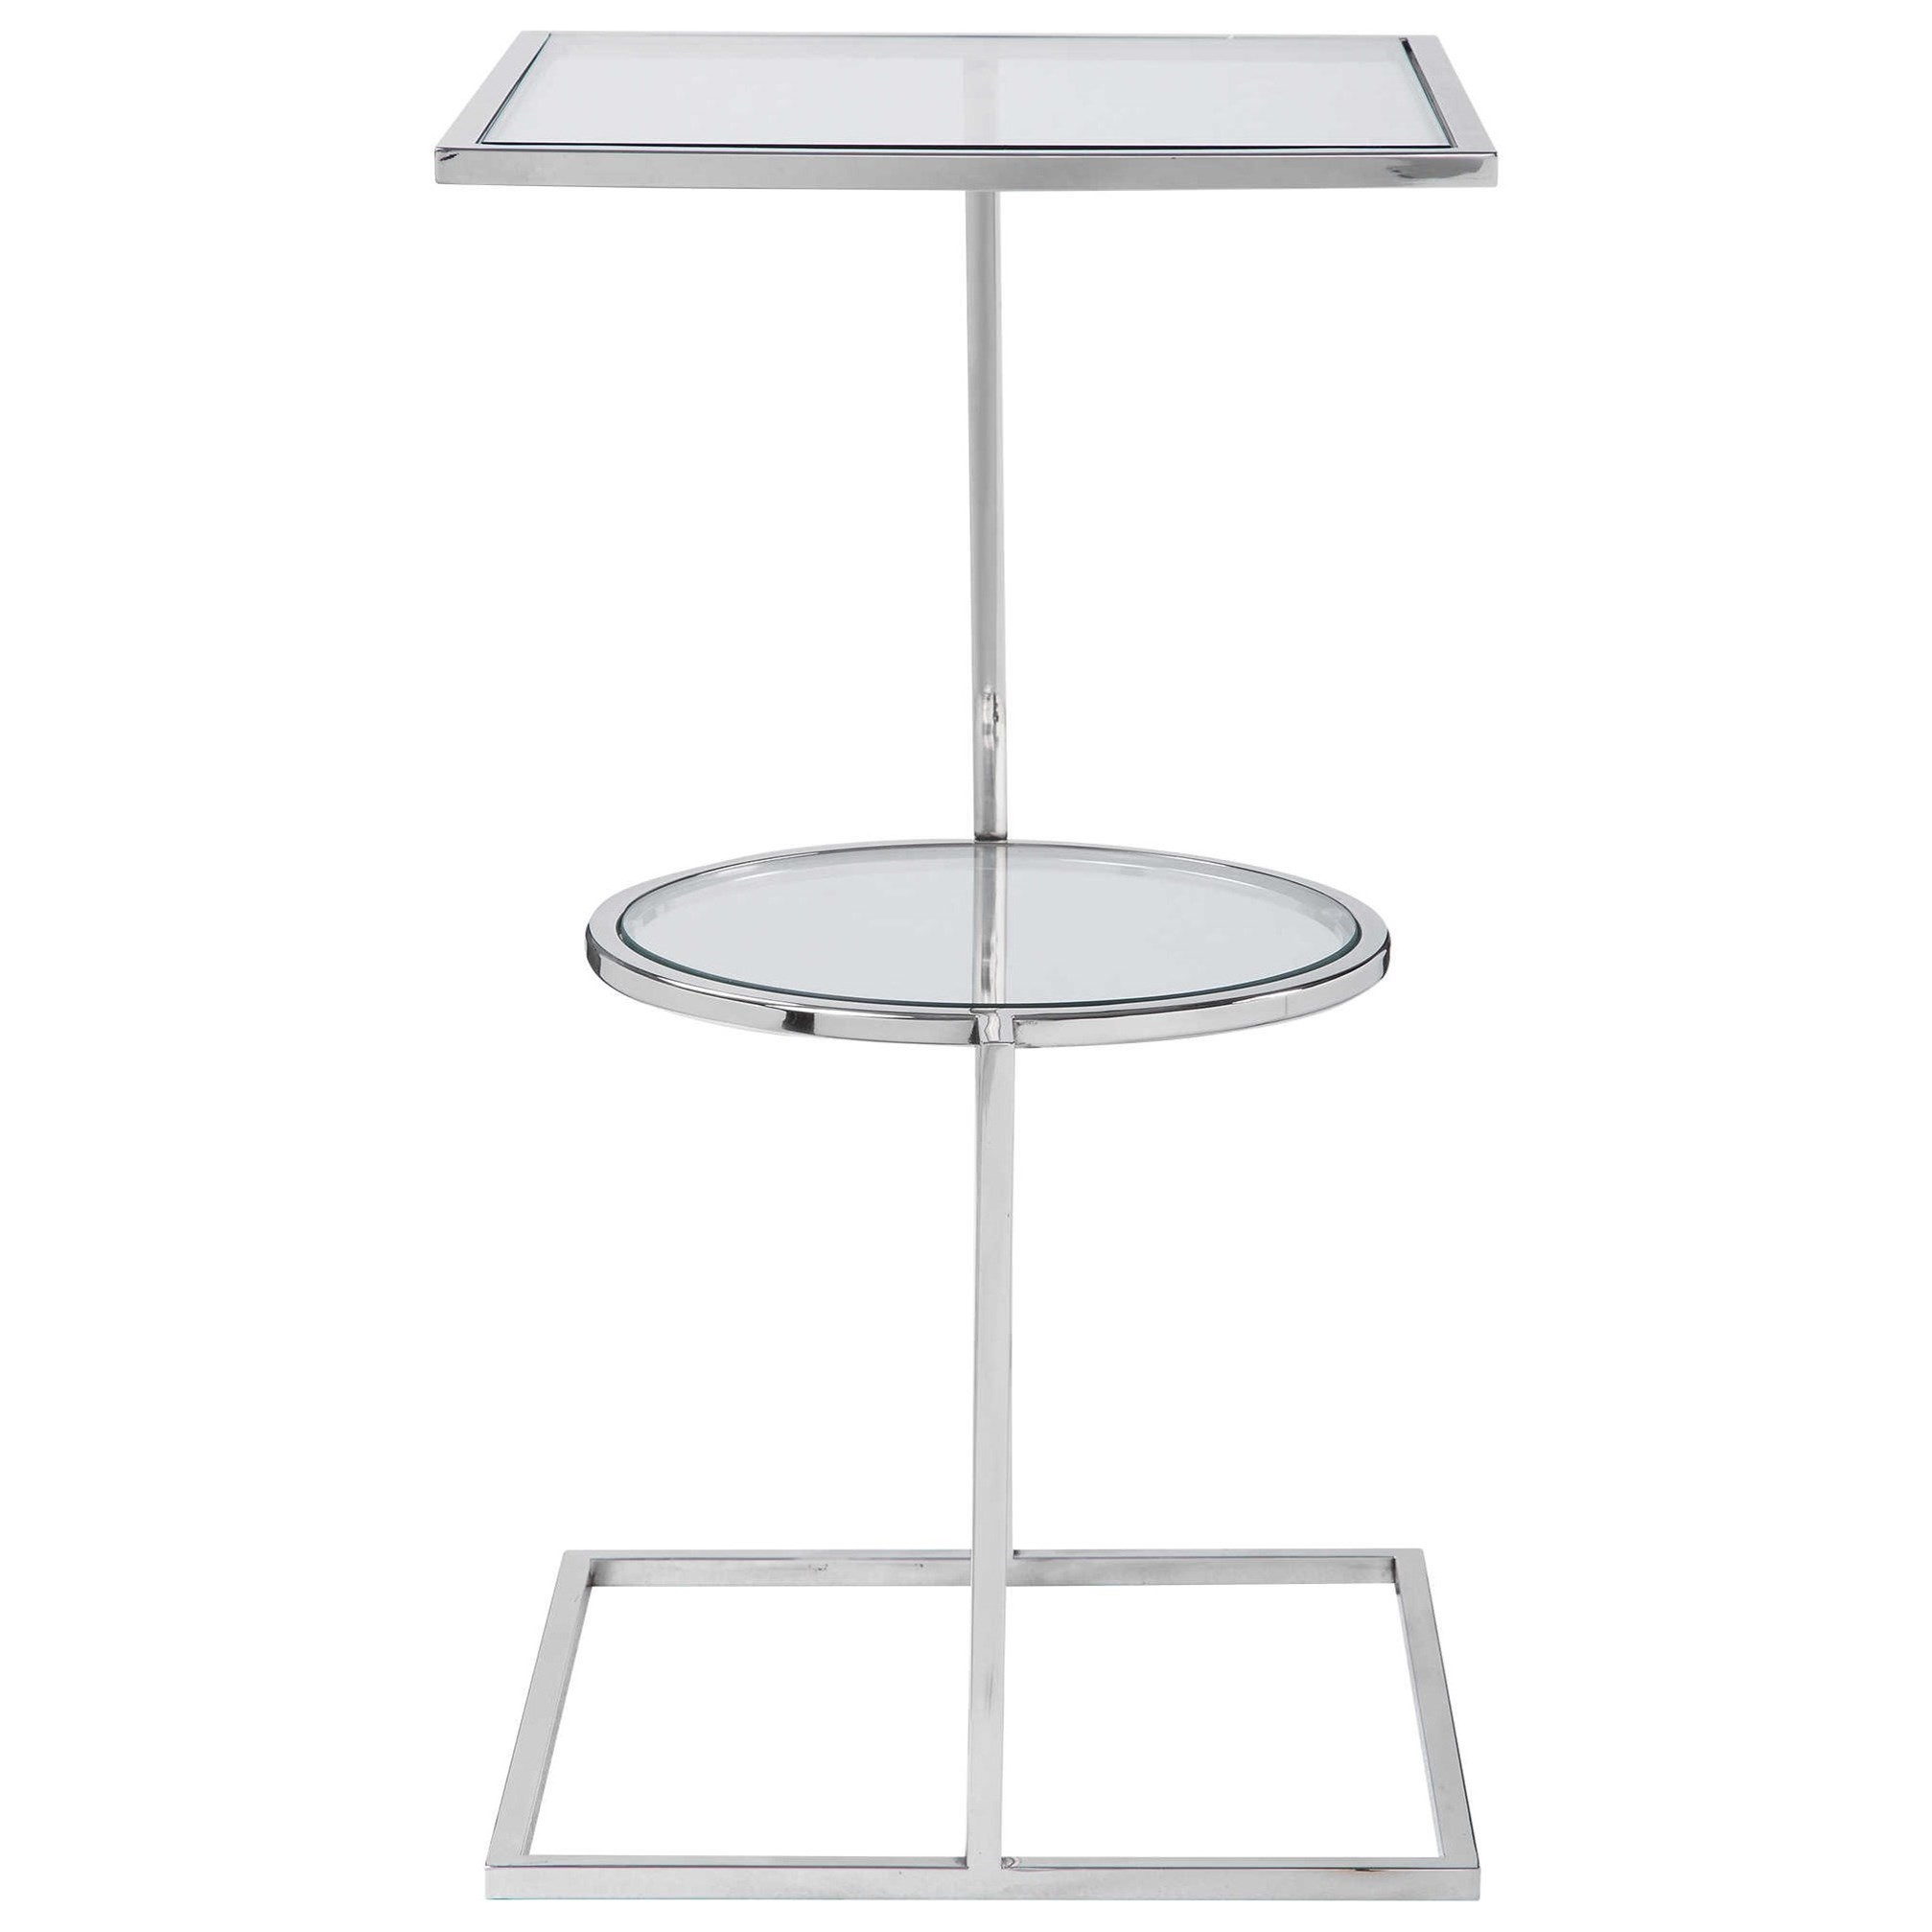 Accent Furniture - Occasional Tables Kirby Modern Accent Table by Uttermost at Upper Room Home Furnishings